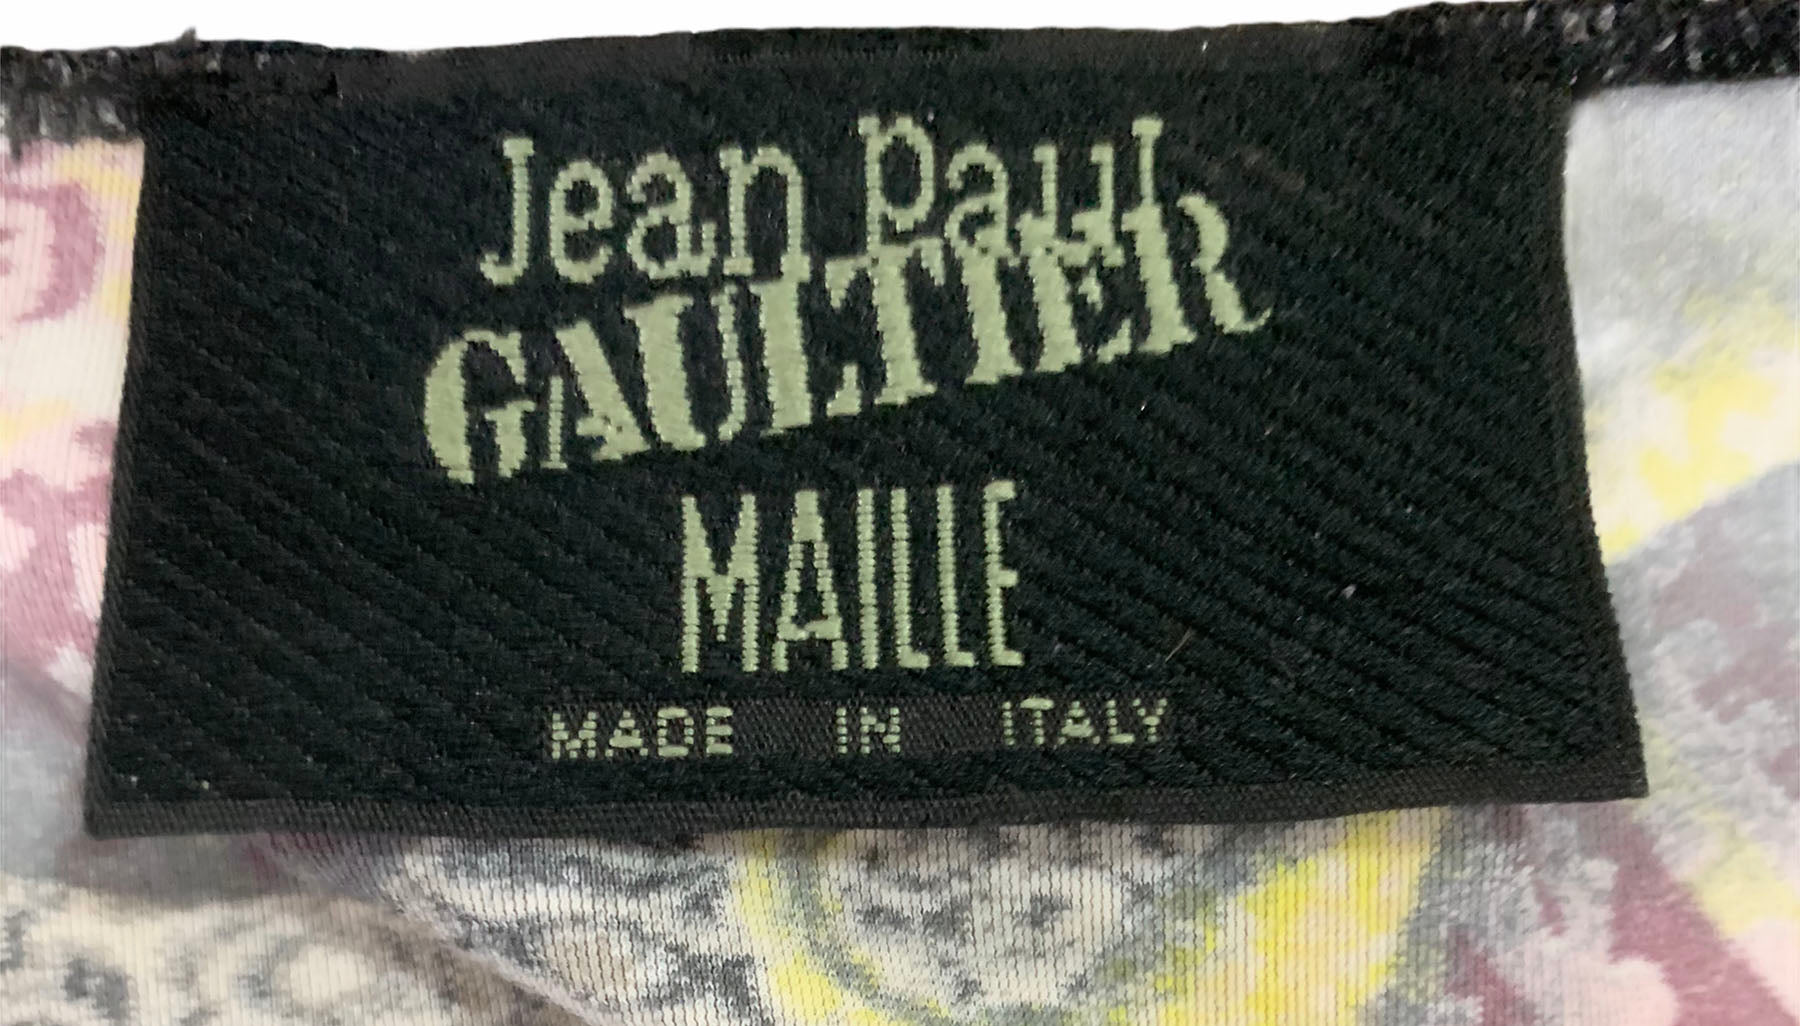 Gaultier Early 2000s Paisley Print Jersey Tee LABEL4 of 4